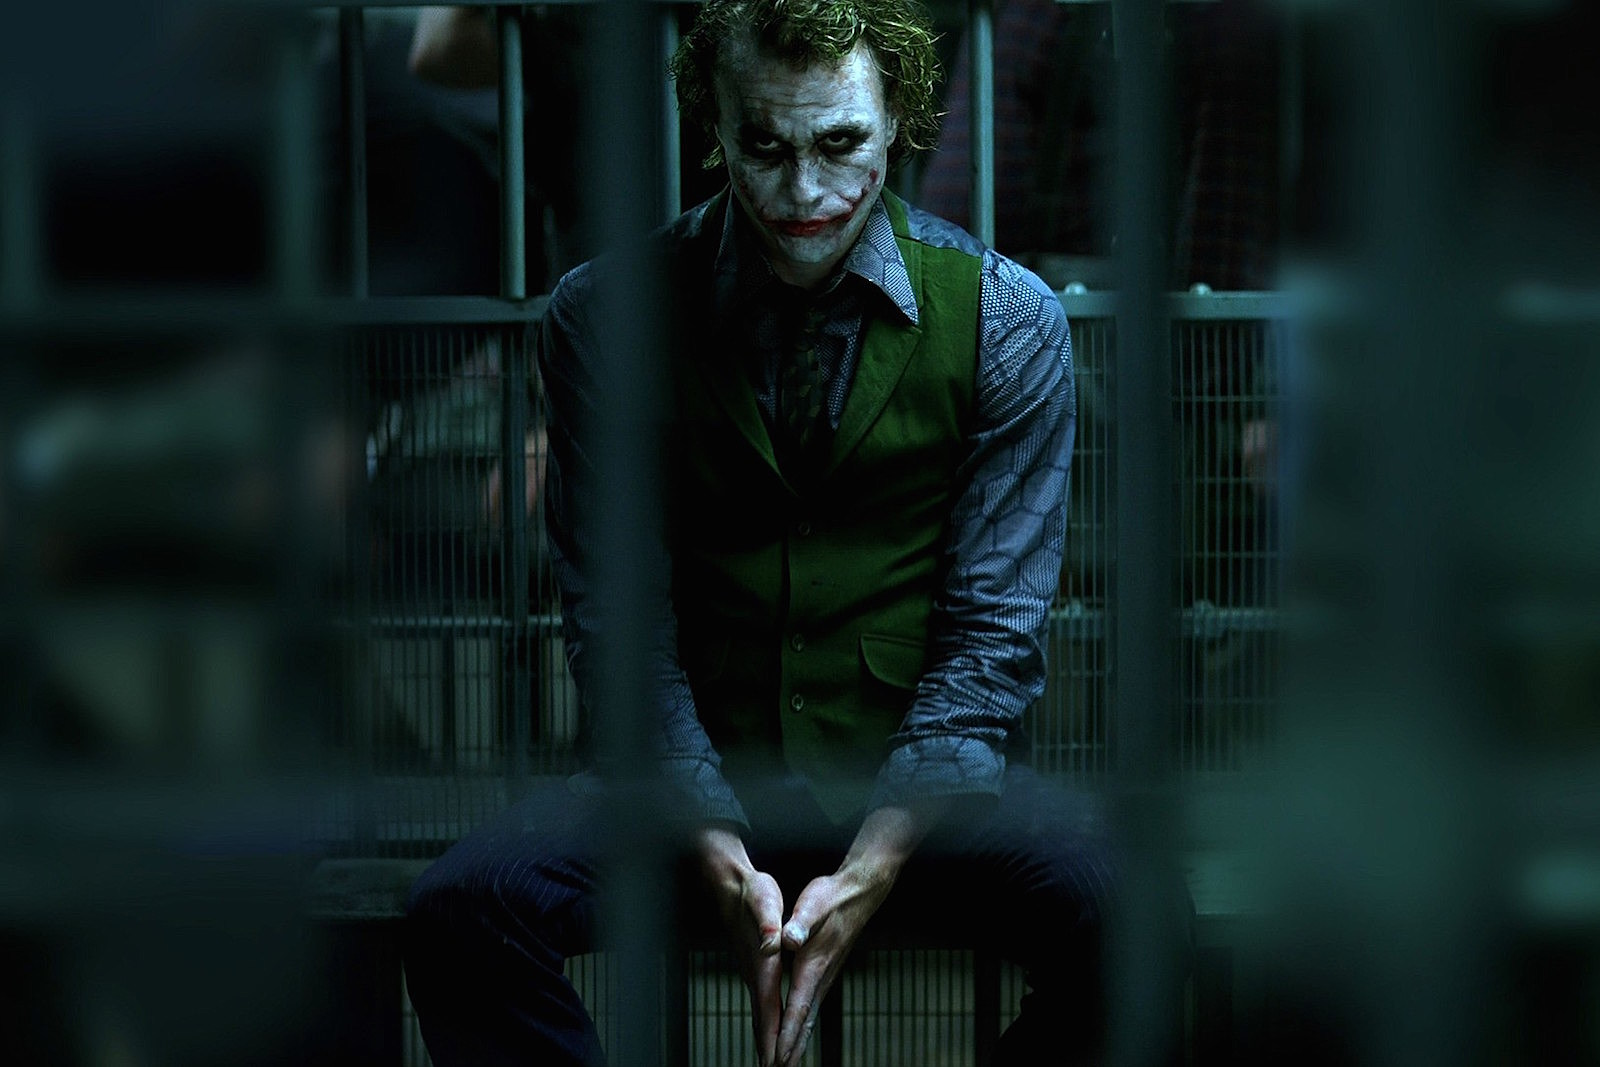 heath ledger planned to